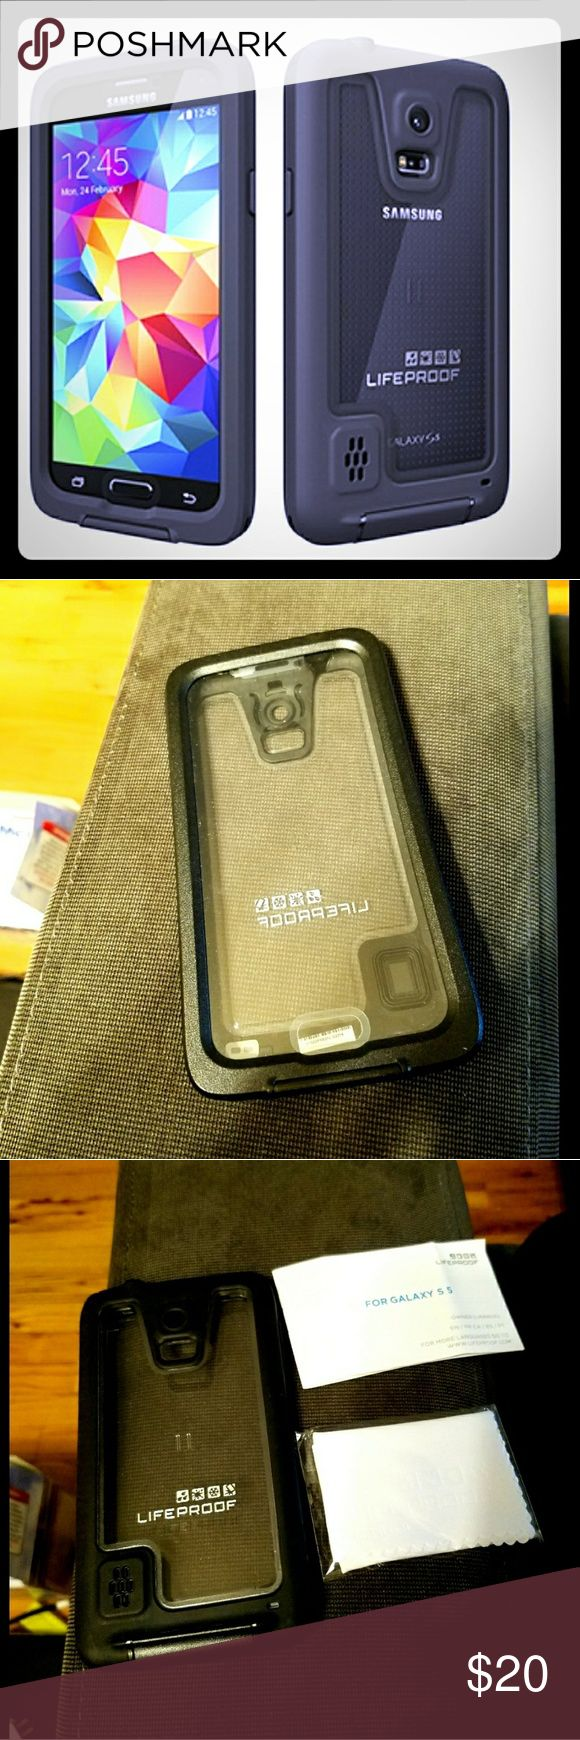 LIFEPROOF Samsung Galaxy S5 Case LIFEPROOF Fre Samsung galaxy S5 case in black. Used 2 times , in great condition, no damages.  ??Water Proof  ??Dirt Proof  ?? Snow Proof  ??Shock Proof  Comes with original box, instruction manual and un opened Microfiber cloth. LifeProof Accessories Phone Cases